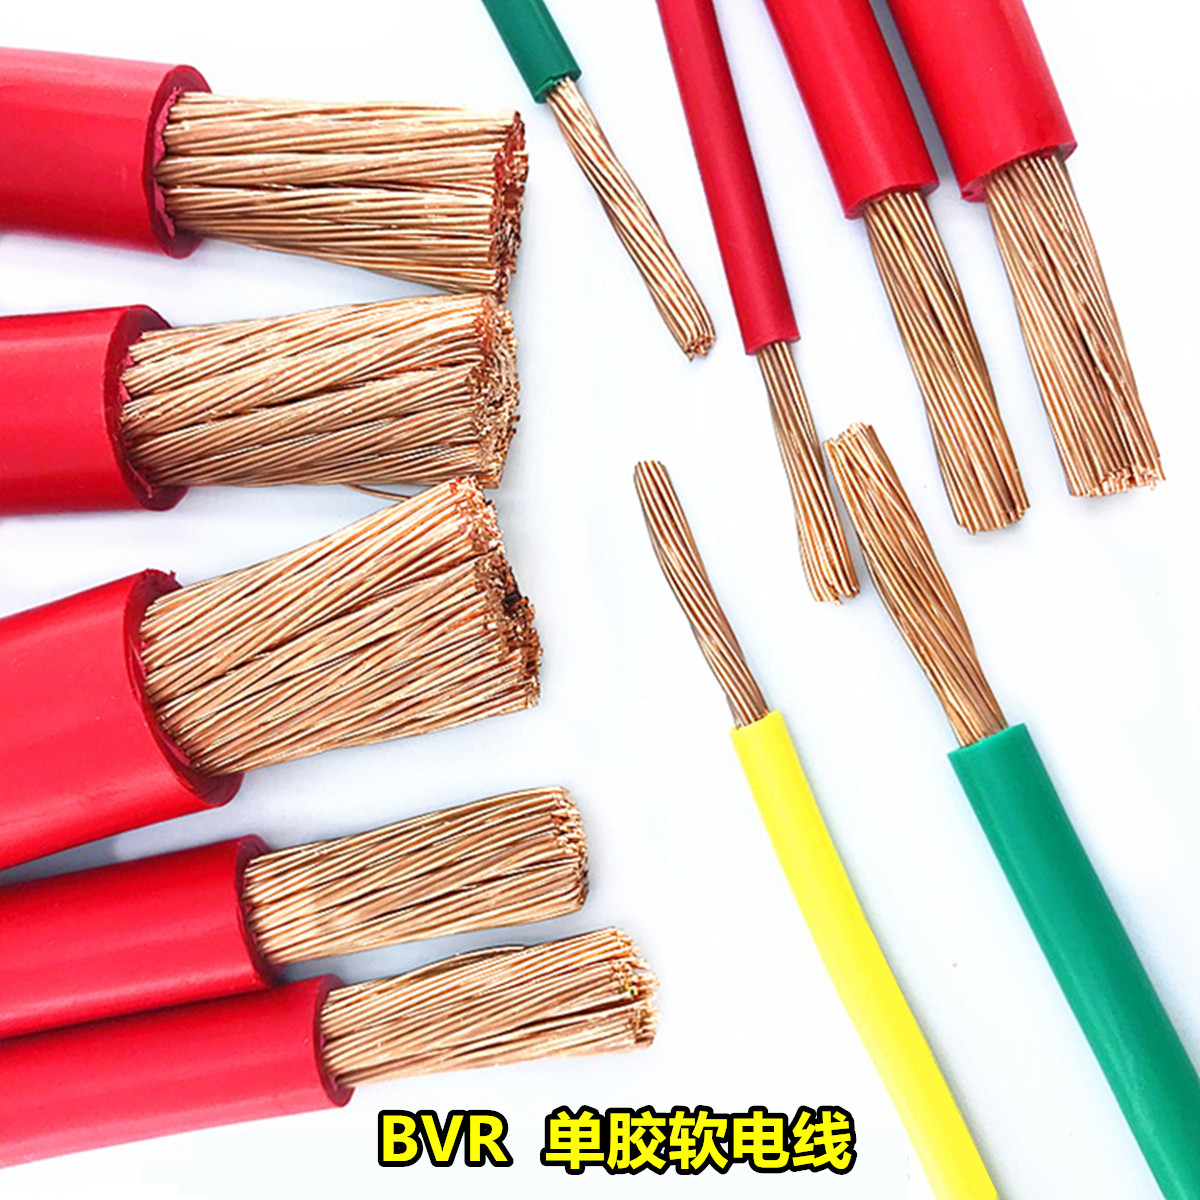 Usd 546 Single Core Copper Multi Strand Flexible Cable Bvr 10 Electrical Wire 25mm2 View 16 25 35 50 Zoom Lightbox Moreview